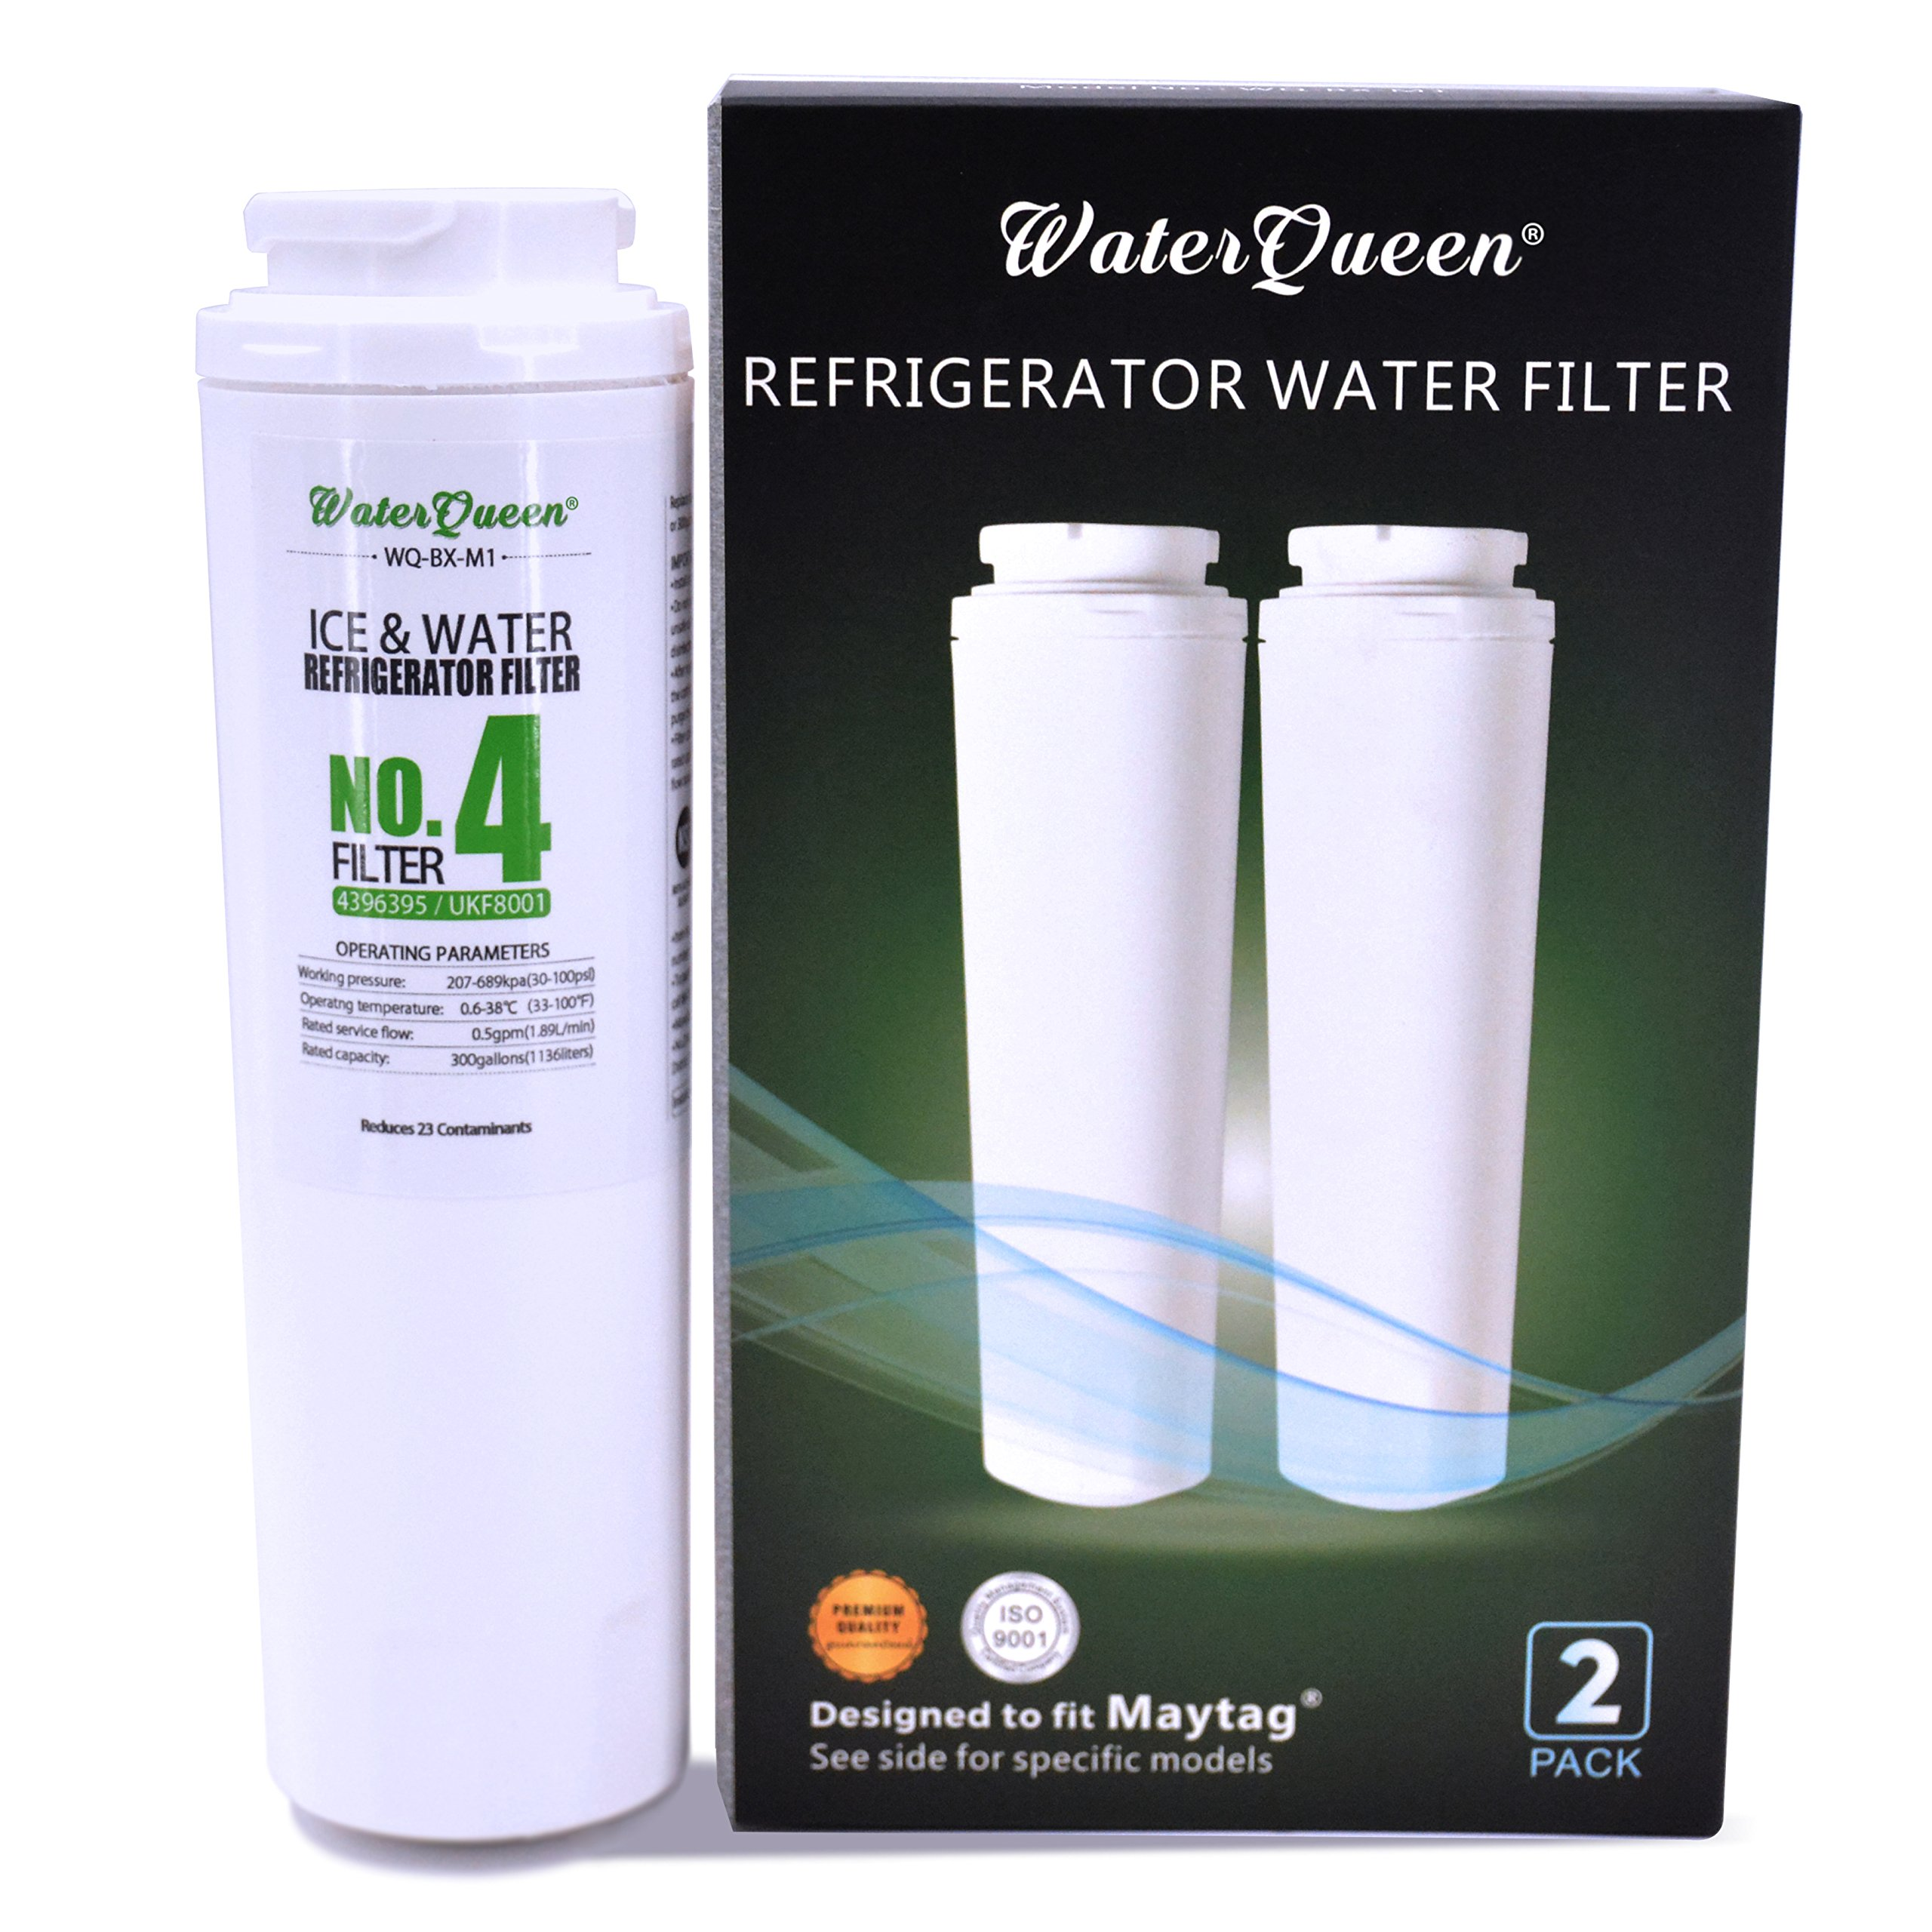 WaterQueen WQ-BX-M1 Replacement for Whirlpool 4396395, EveryDrop Filter 4, EDR4RXD1, Puriclean II, 469006, Jenn-Air, Maytag UKF8001, UKF8001P Refrigerator Water Filter (NSF42 Certificated) (2 pack)